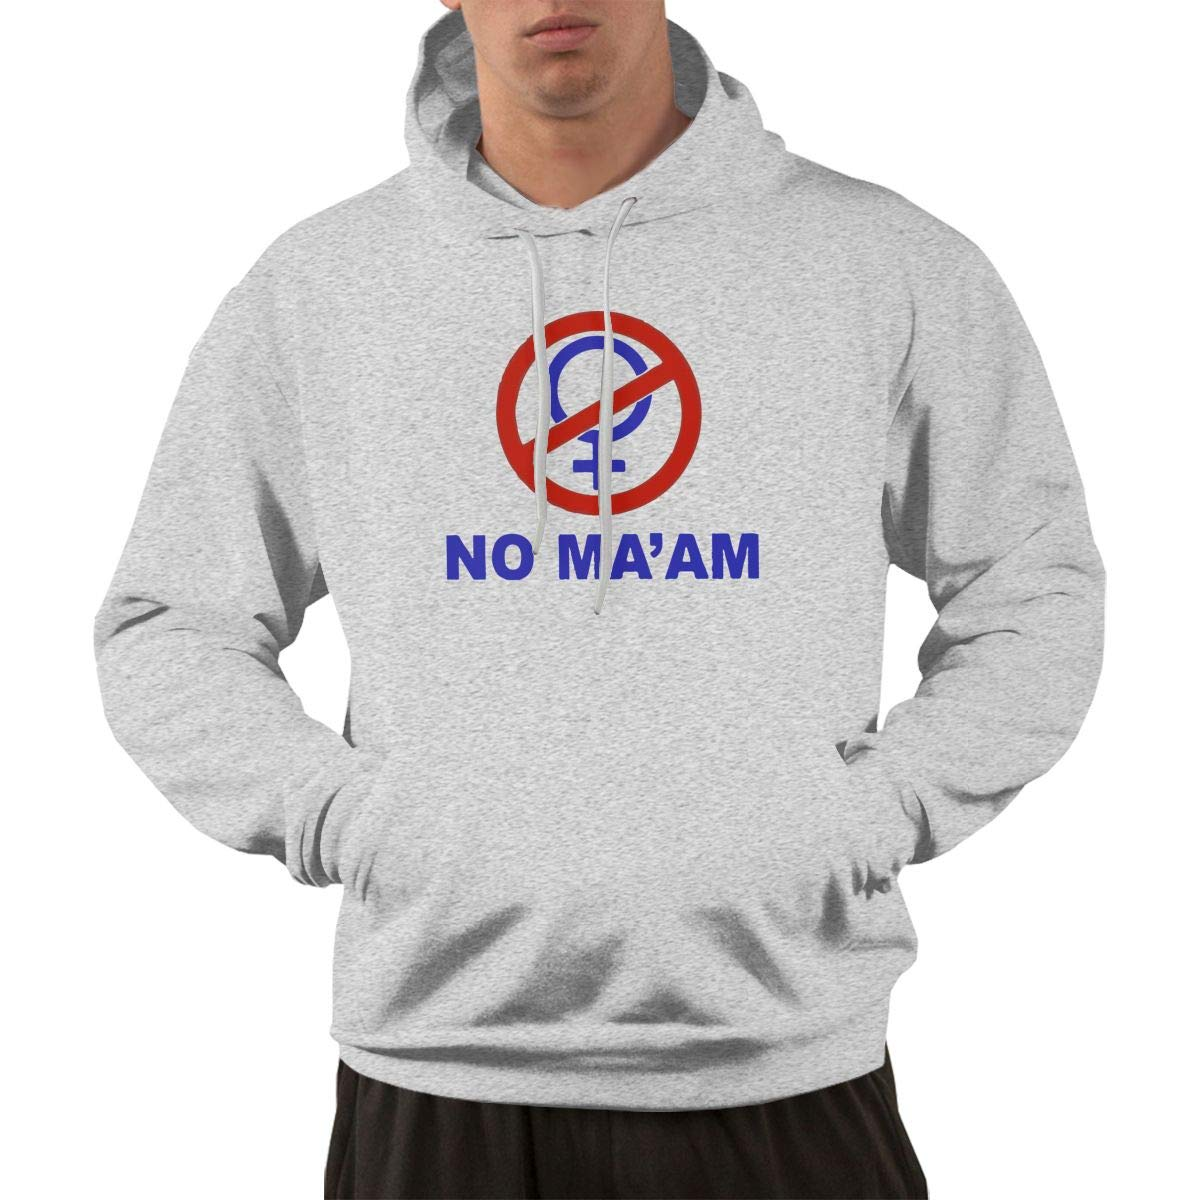 Mens Casual Cotton NO MAAM Hoodies Hooded Sweatshirts Black